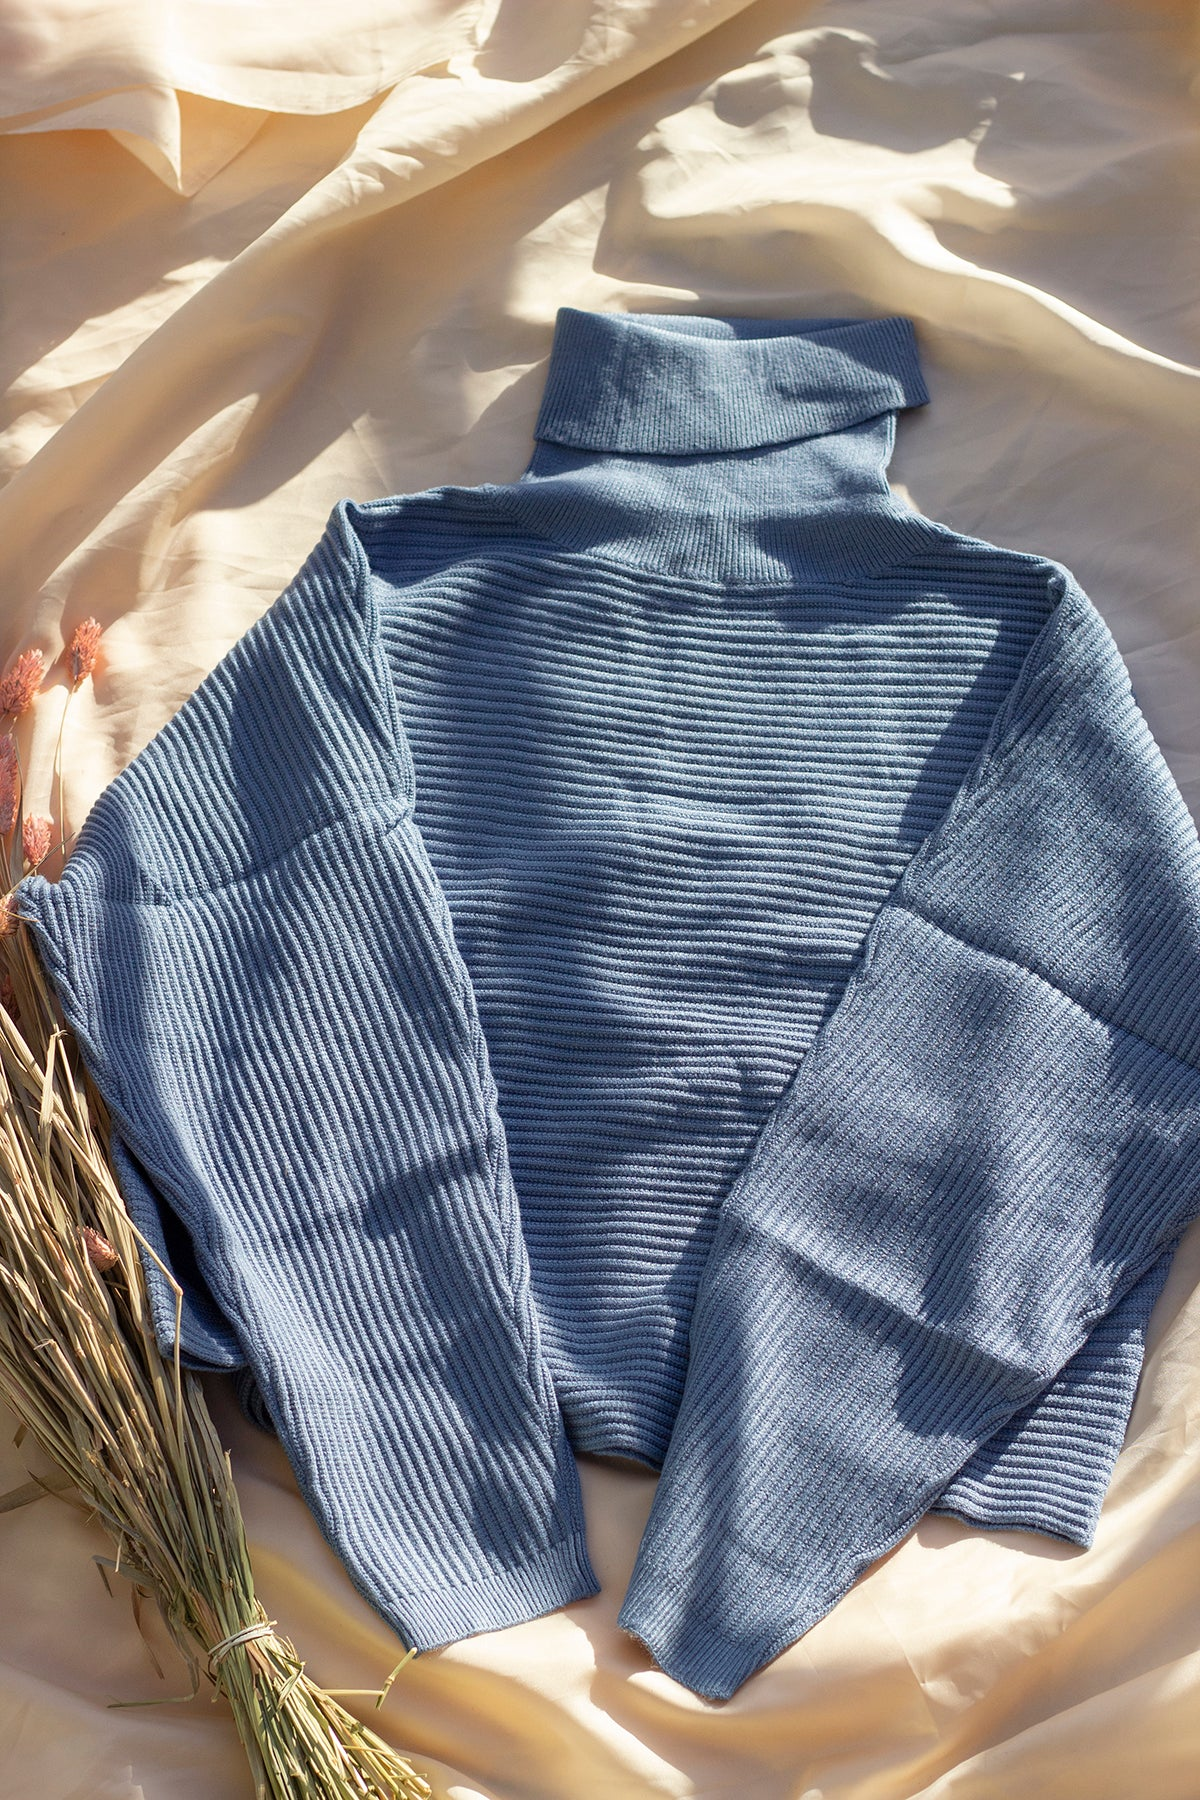 High Neck Ribbed Powder Blue Sweater - Sugar + Style